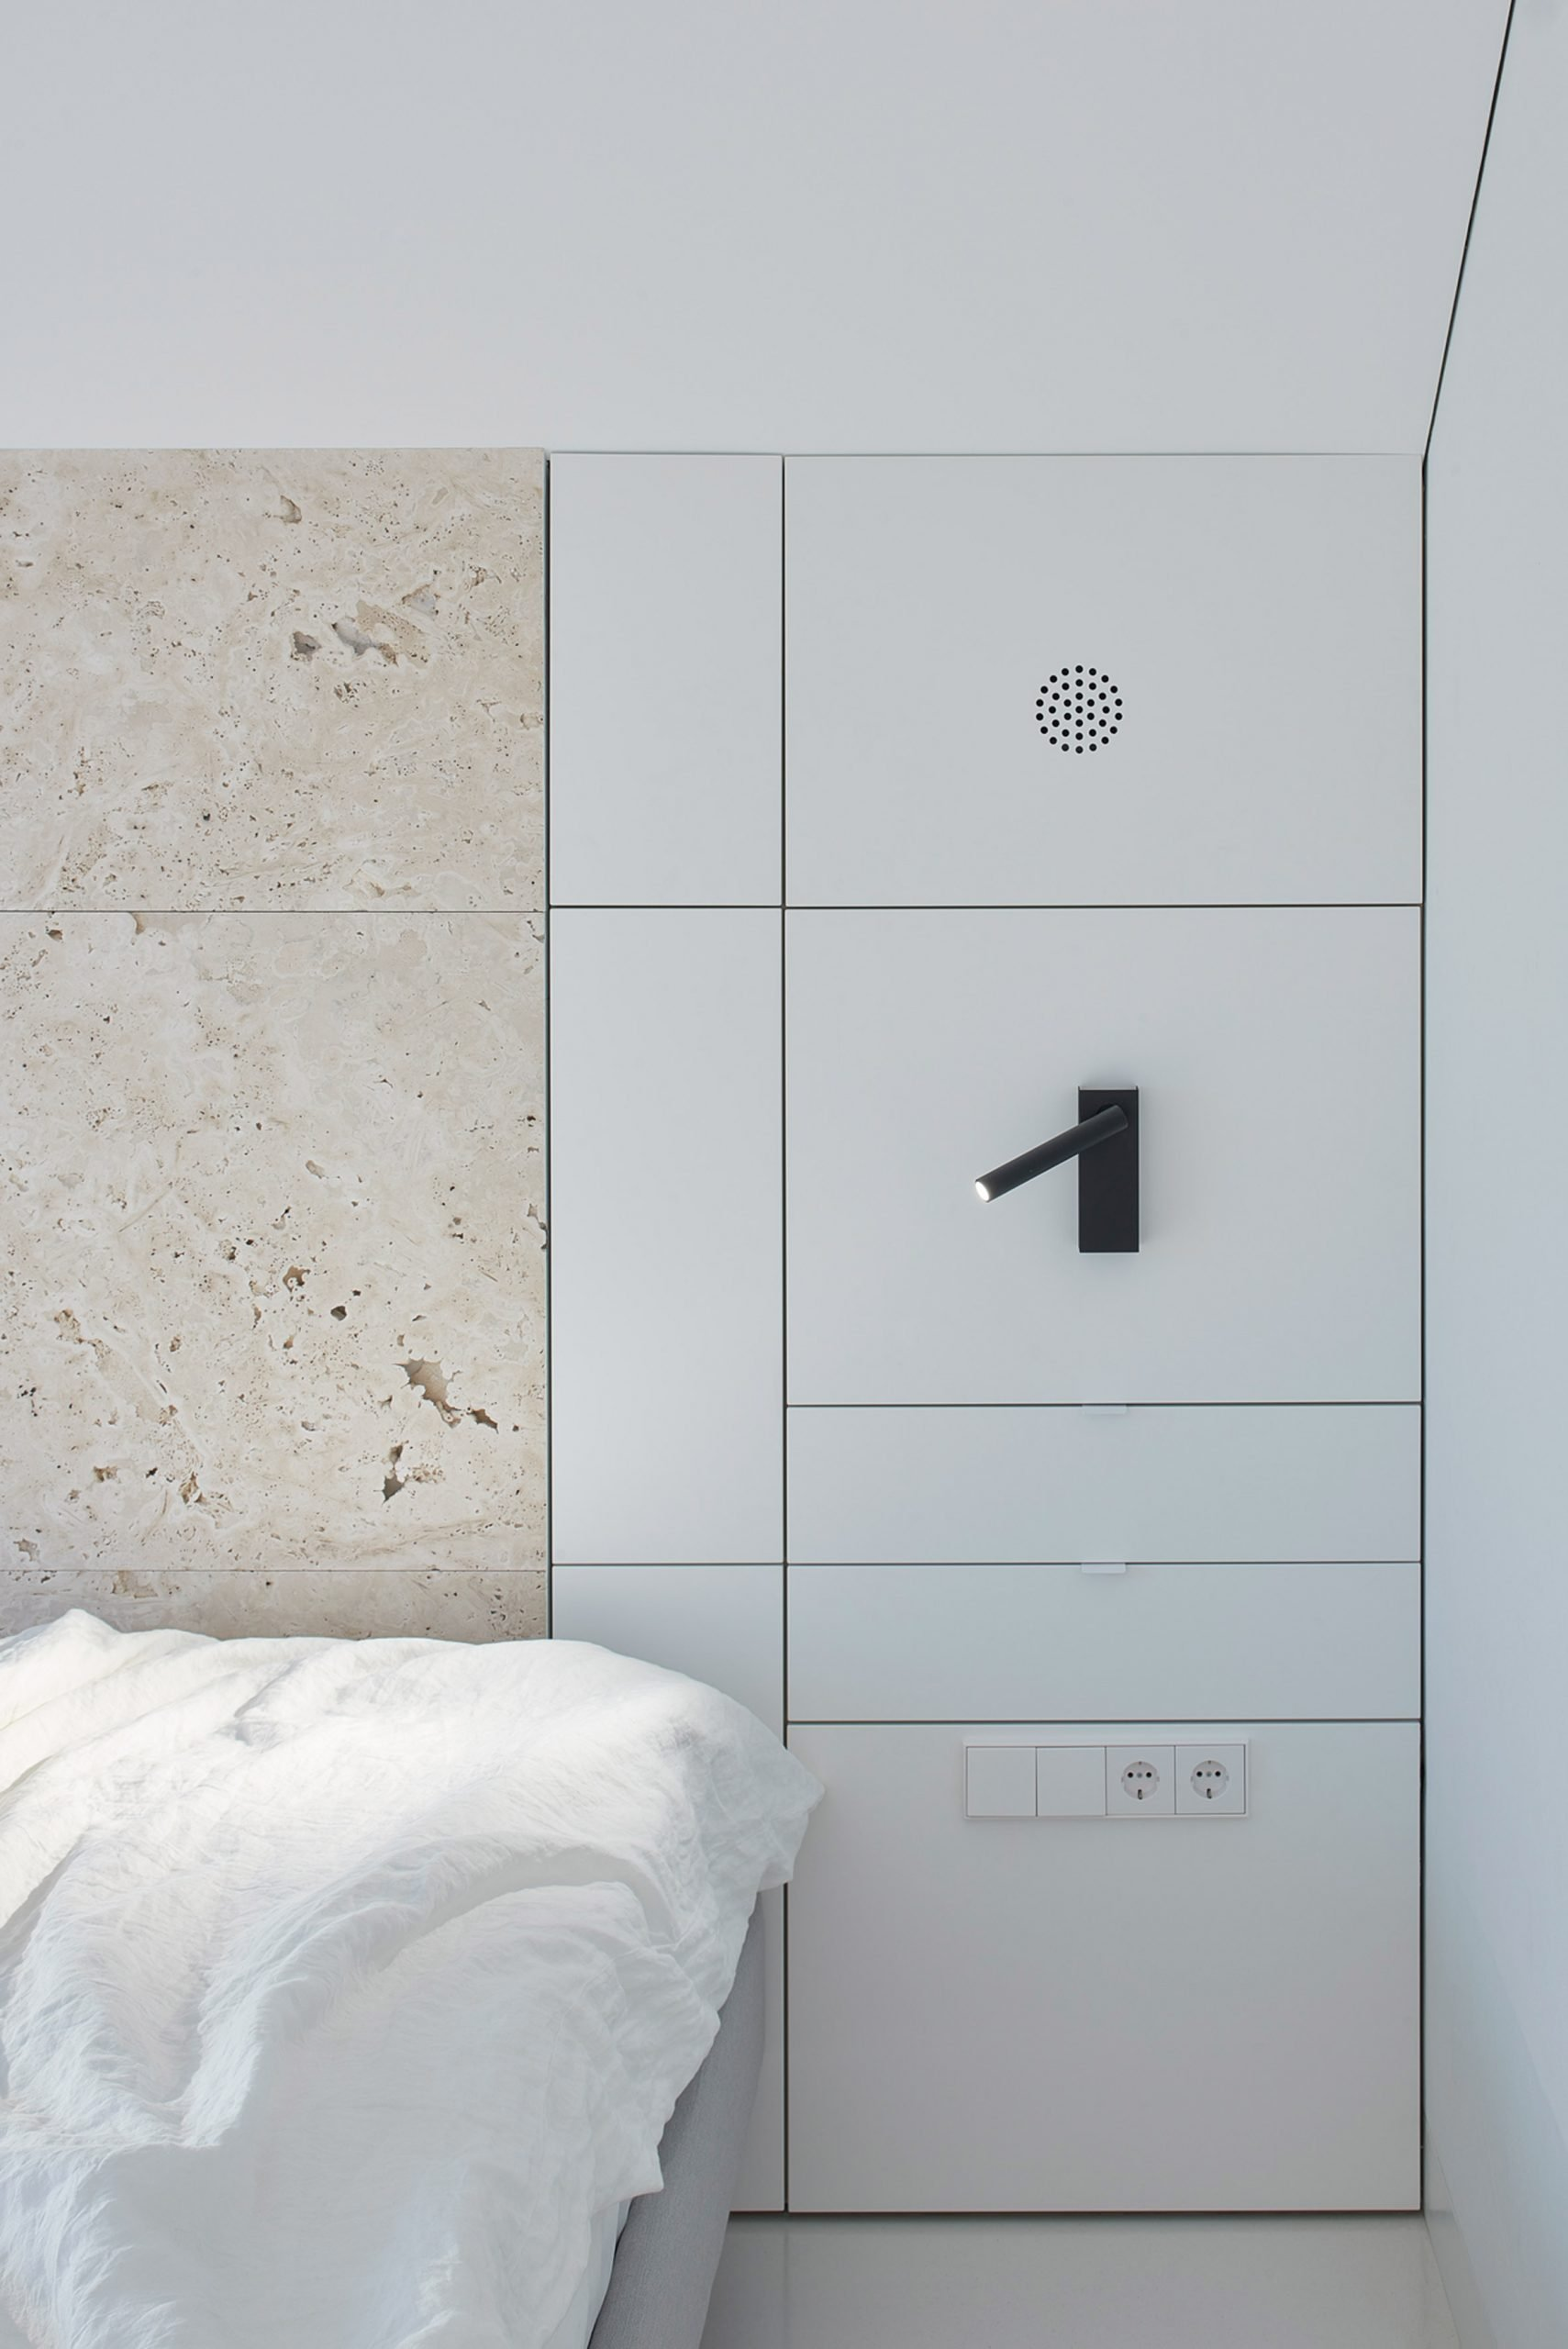 Bedroom with built-in lighting, storage and travertine wall in Greetings from Rome apartment